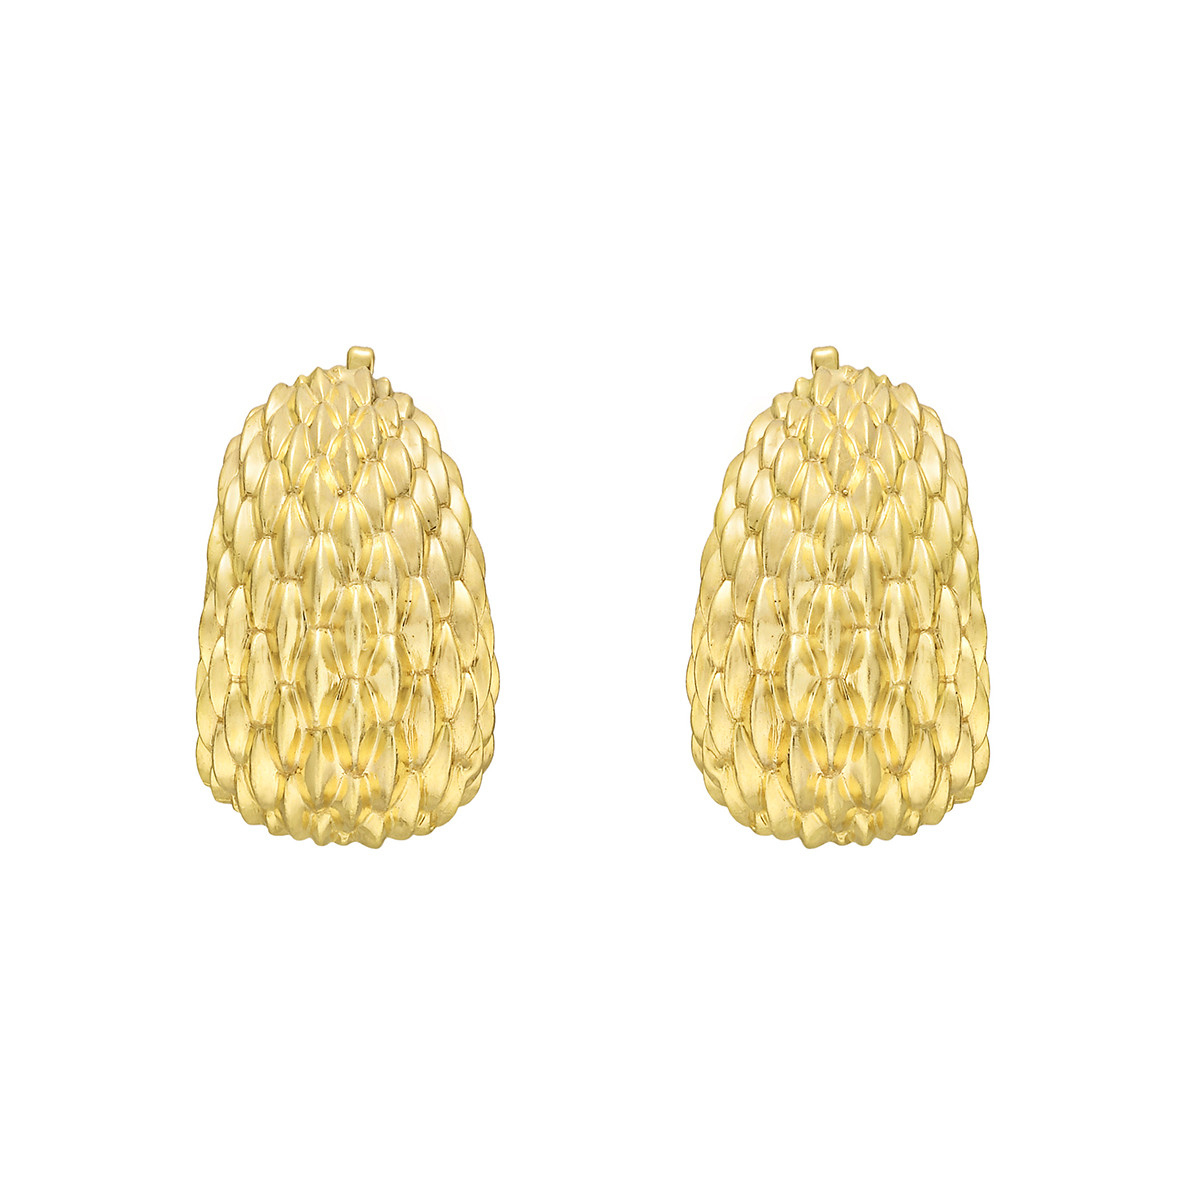 Textured 14k Yellow Gold Earclips